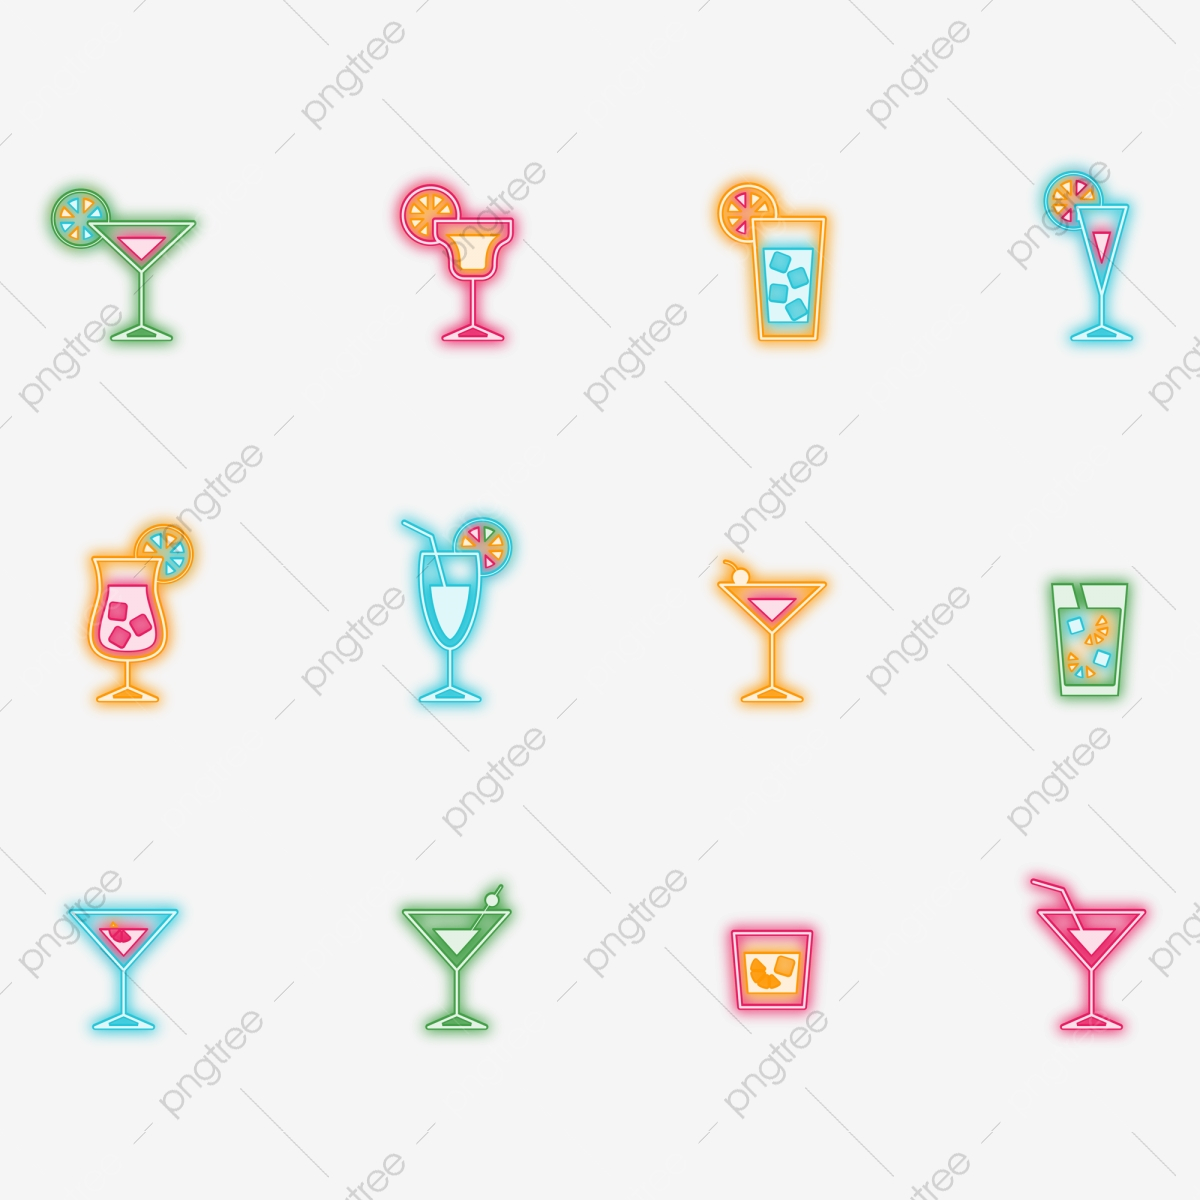 Light Bar Png Images Vector And Psd Files Free Download On Pngtree